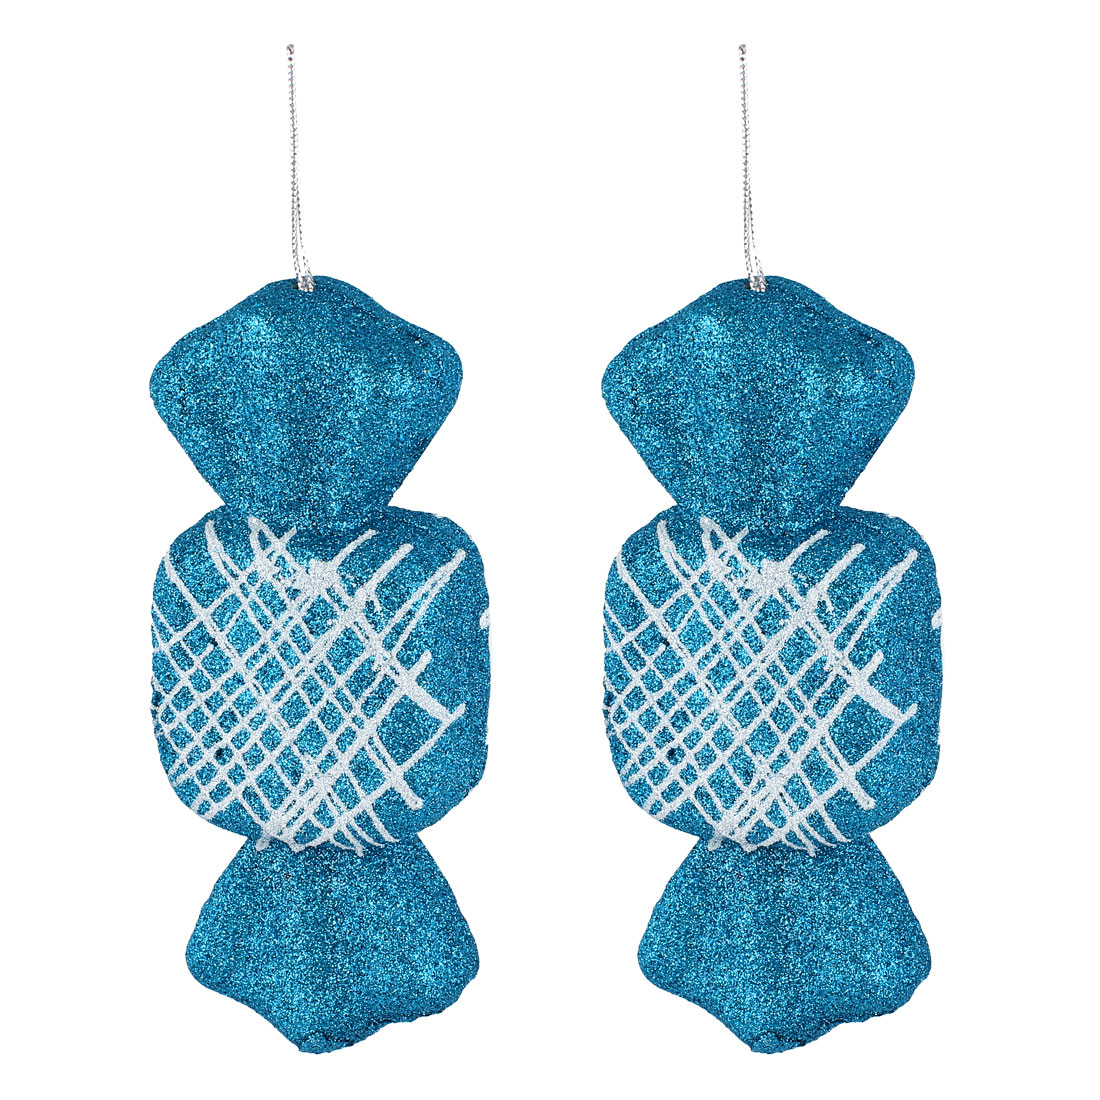 2 Pcs Glittery Hanging Christmas Candy Confectionery Pendant Cyan for Xmas Tree Decor